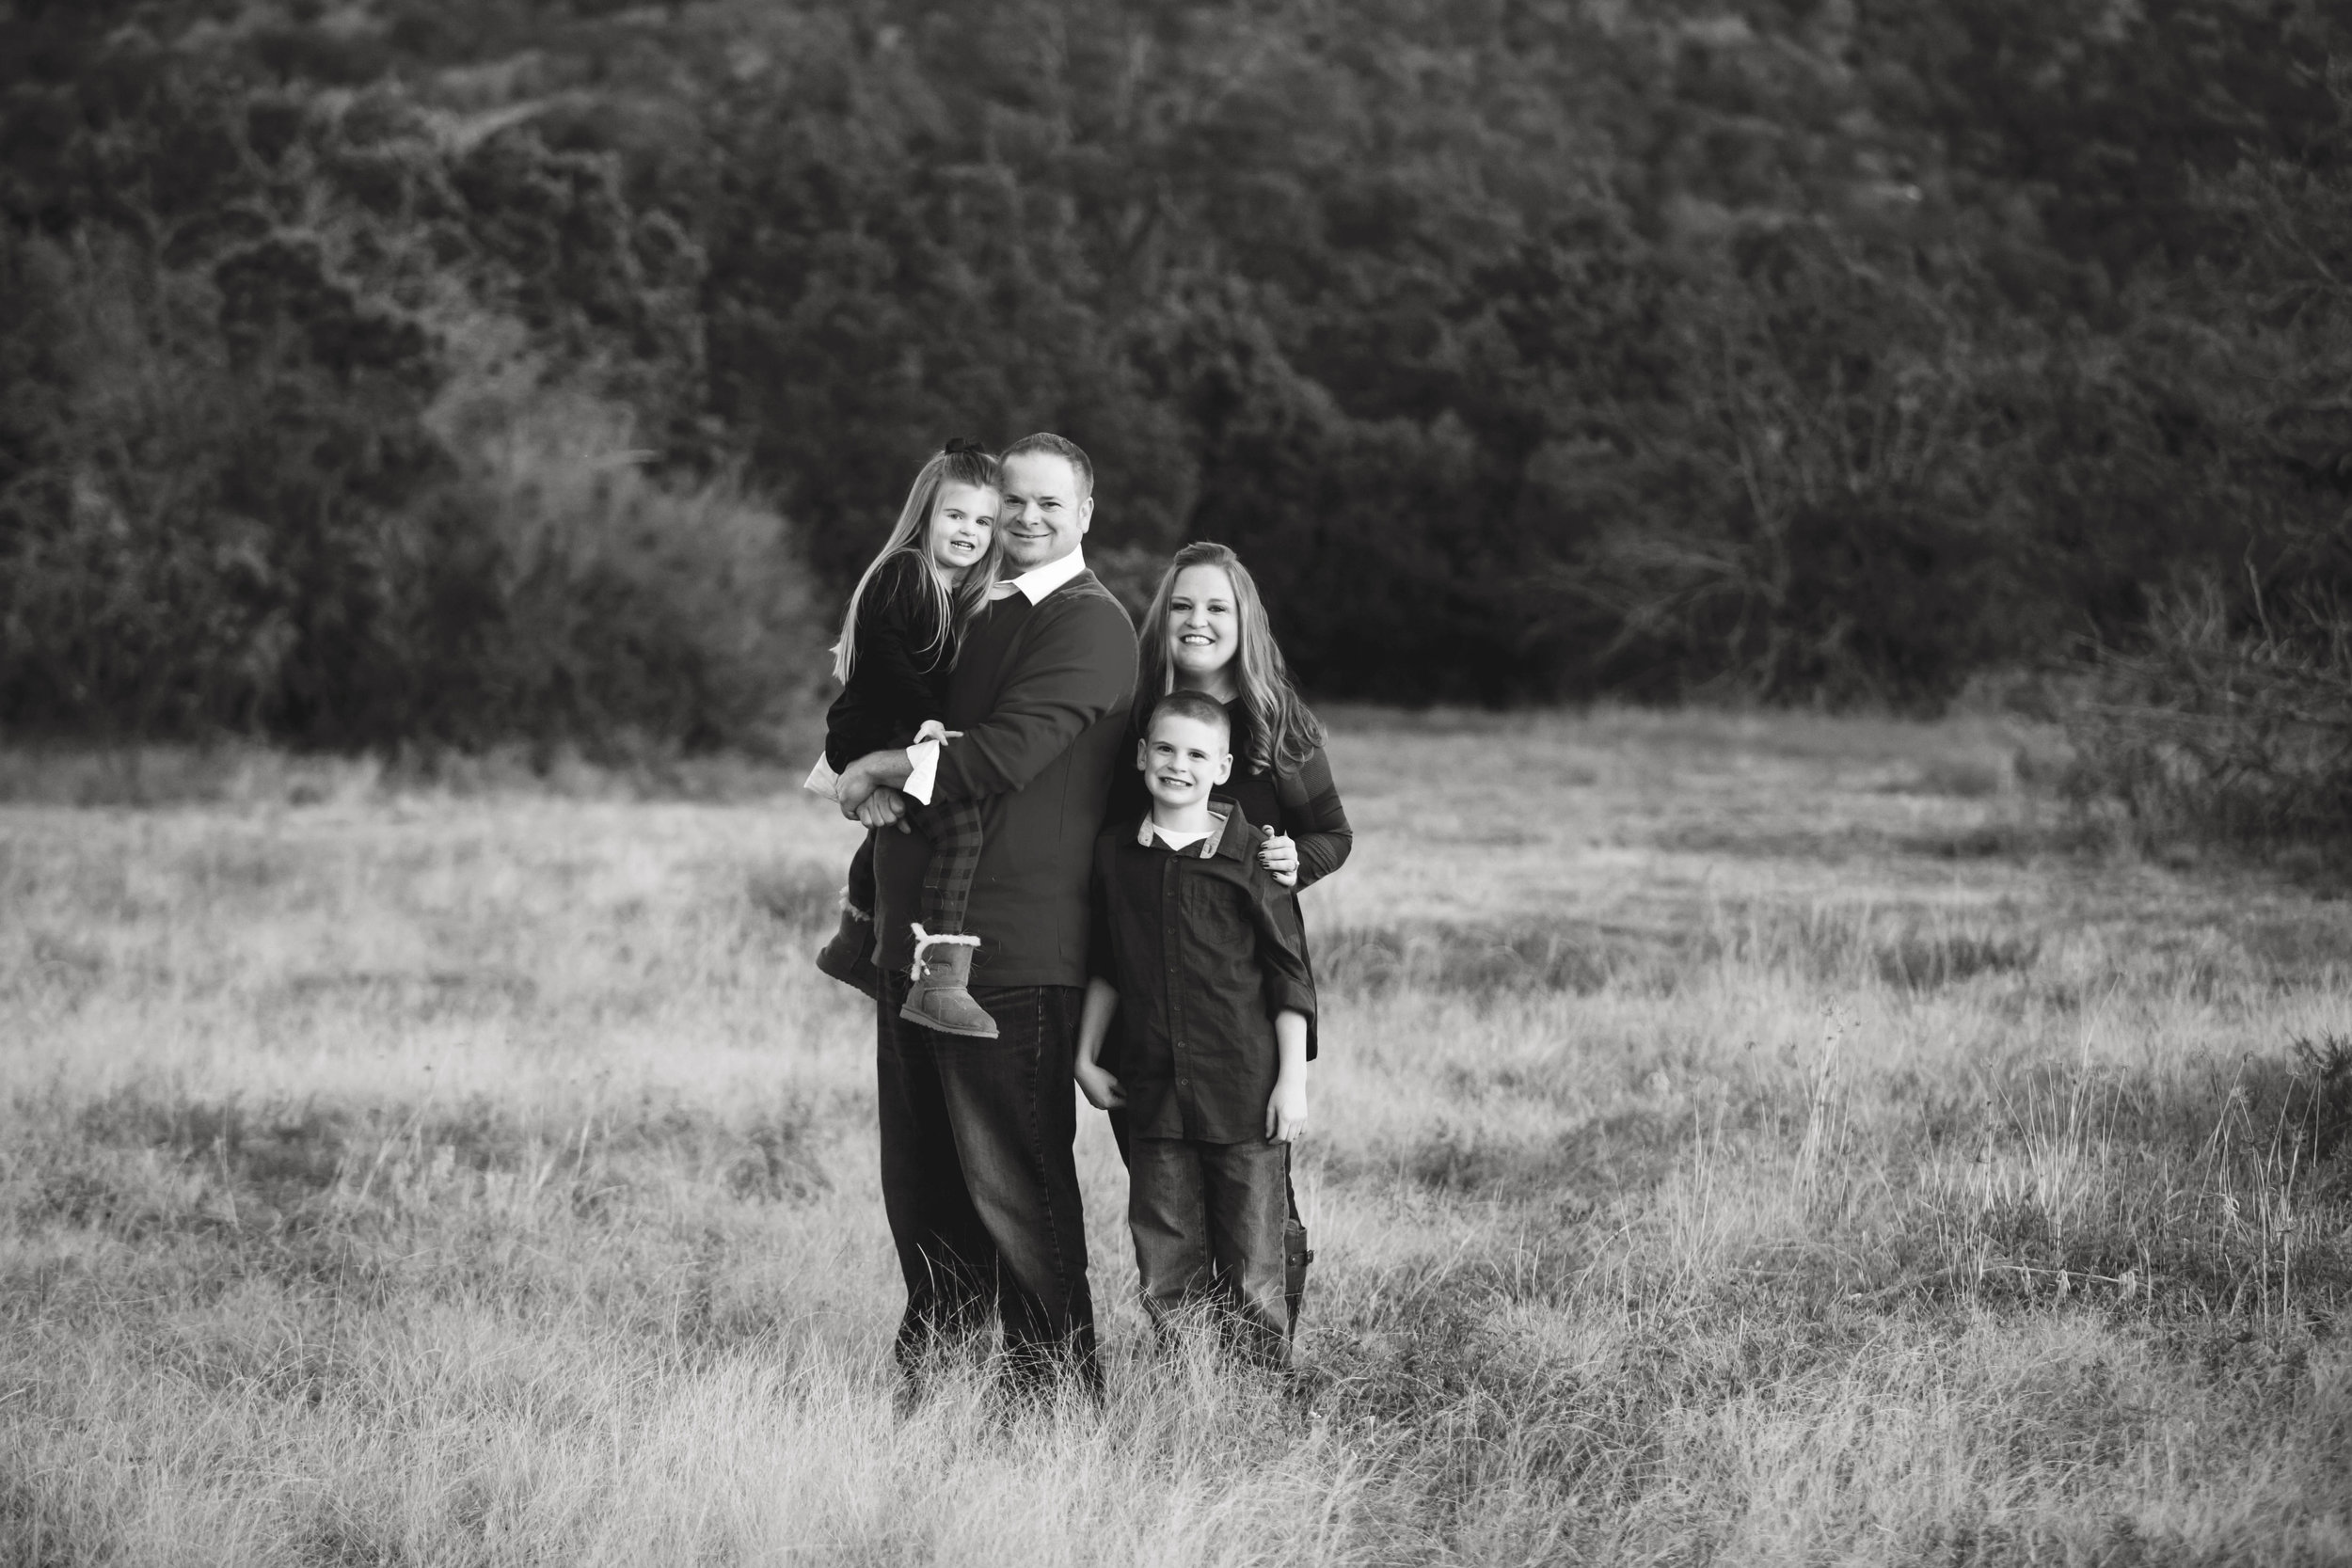 Marble_Falls_Sternad_Family_Photographer_Jenna_Petty_15.jpg